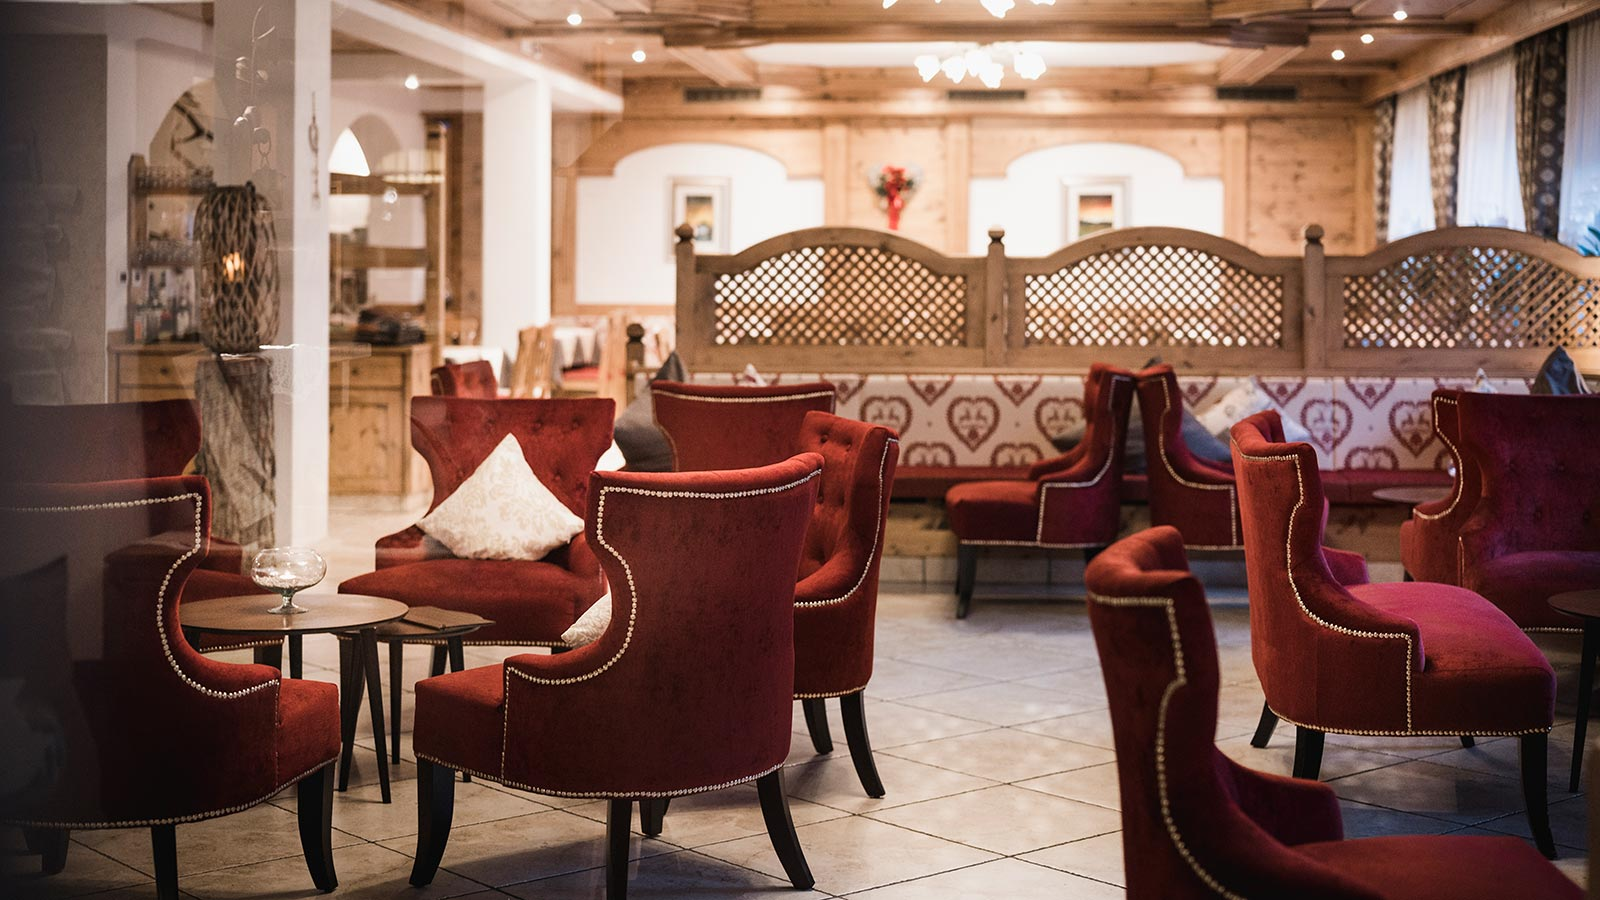 The bar room of the Hotel Laguscei with red velvet armchairs